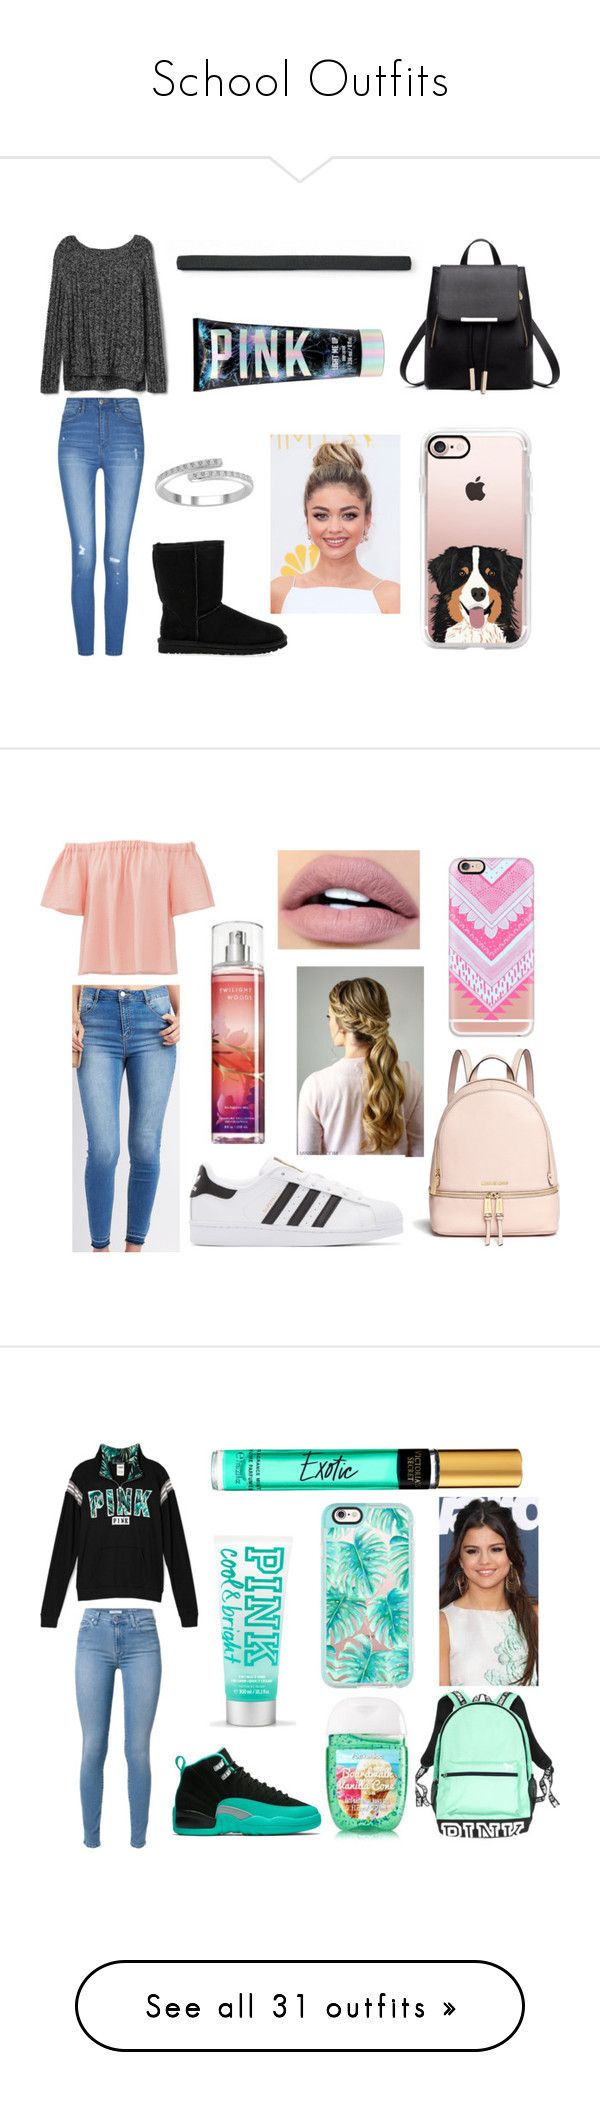 """""""School Outfits"""" by basketballislife11 ❤ liked on Polyvore featuring Gap, UGG Australia, Casetify, SO, Victoria's Secret, Rebecca Taylor, Refuge, Michael Kors, adidas Originals and ColourPop"""